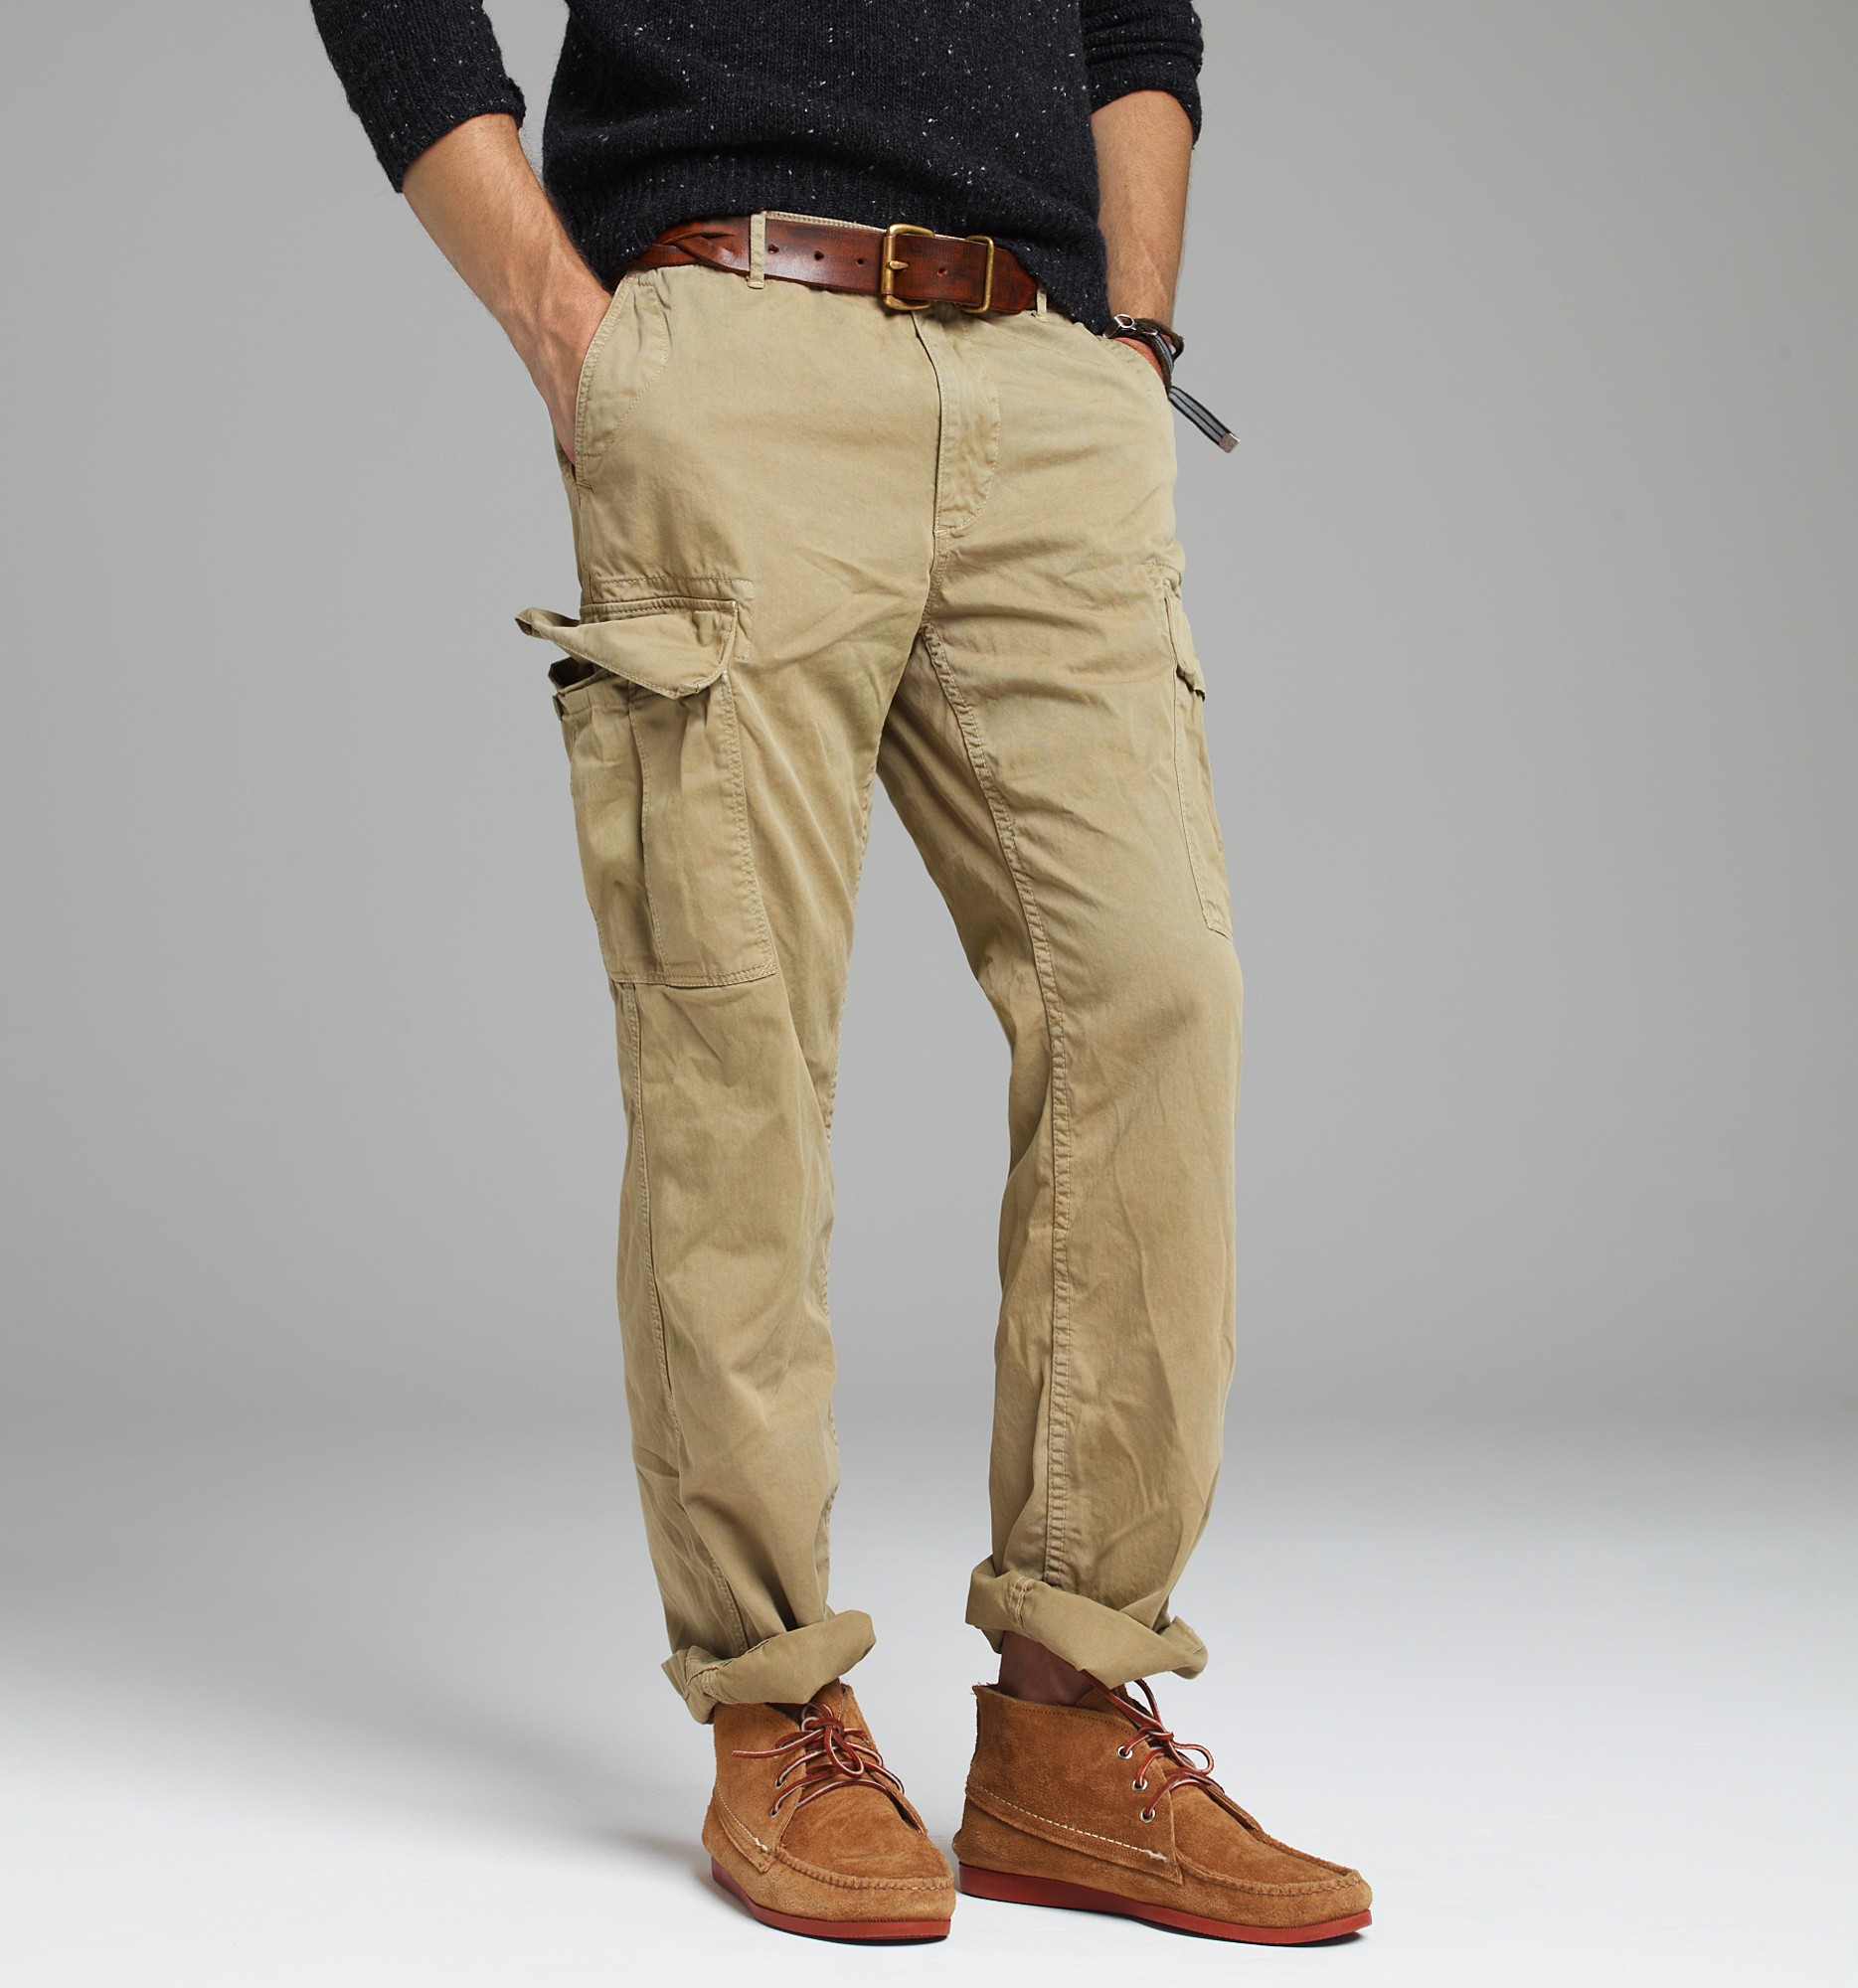 J Crew Stanton Cargo Pant In Urban Slim Fit In Natural For